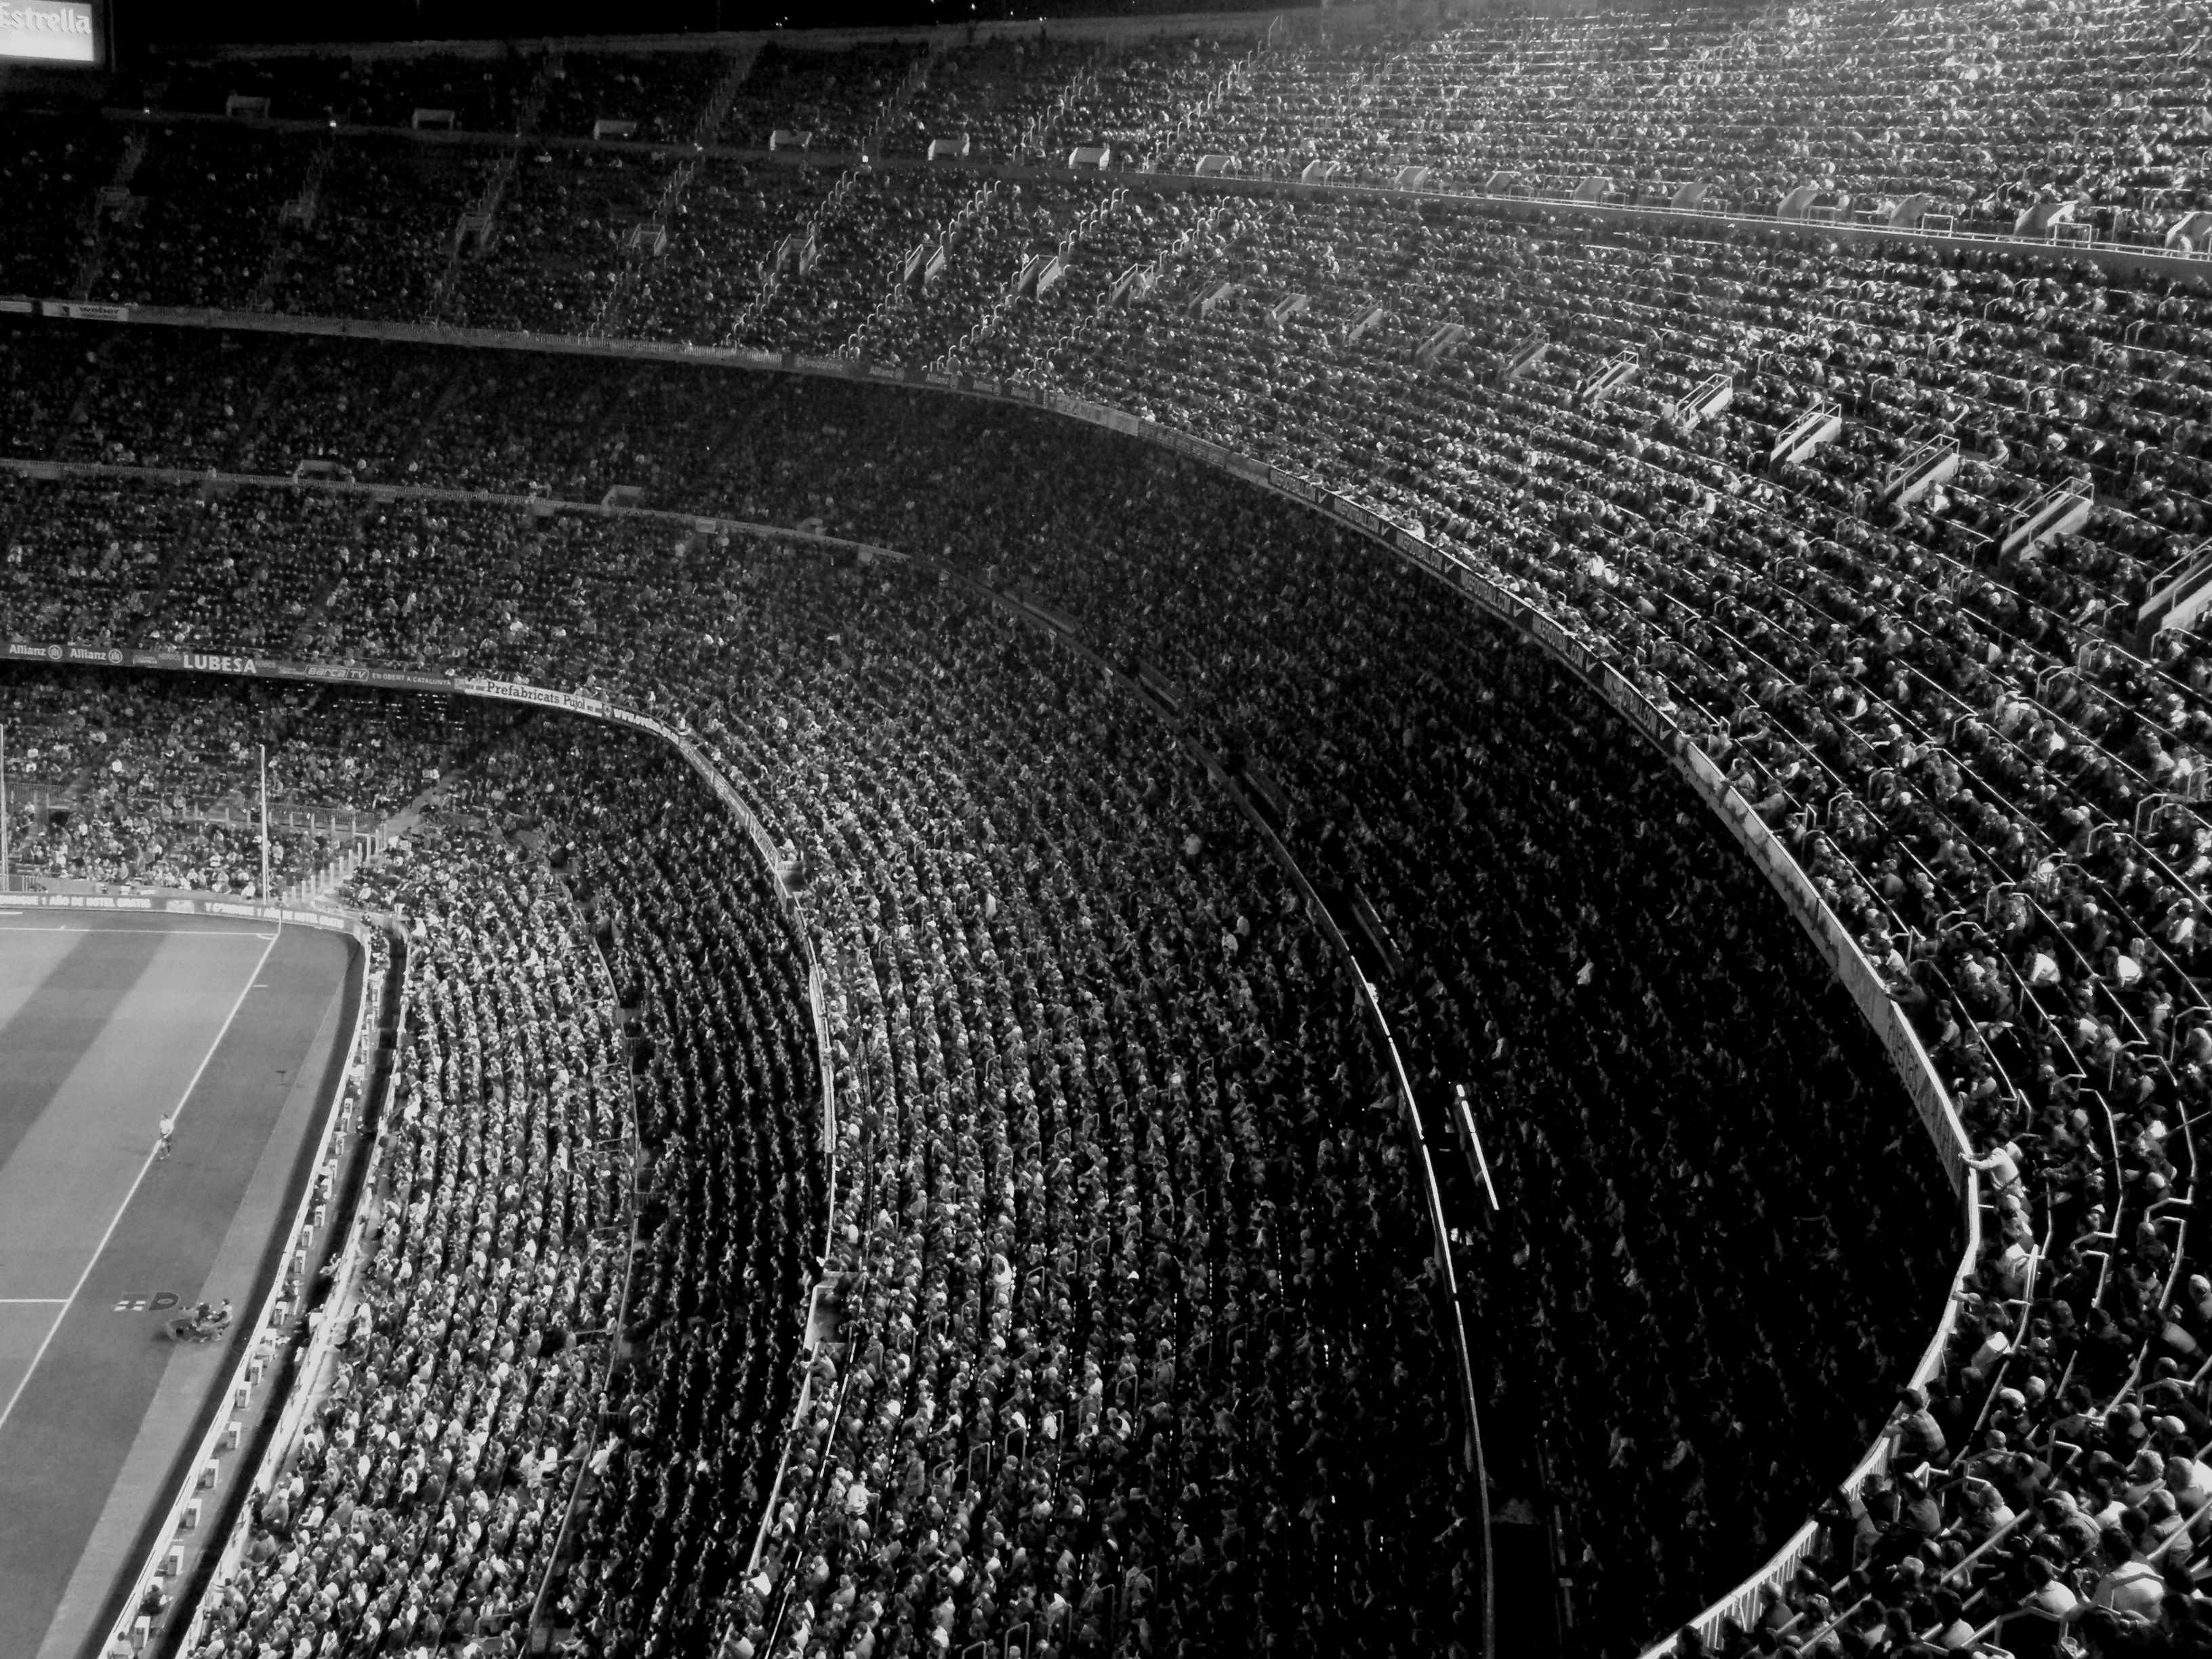 Photography Black White Stands Tribune Match Game Society Club Supporters Fans Throng Crowd Multitude Audienc In 2020 Black And White Camp Nou Photography Wallpaper